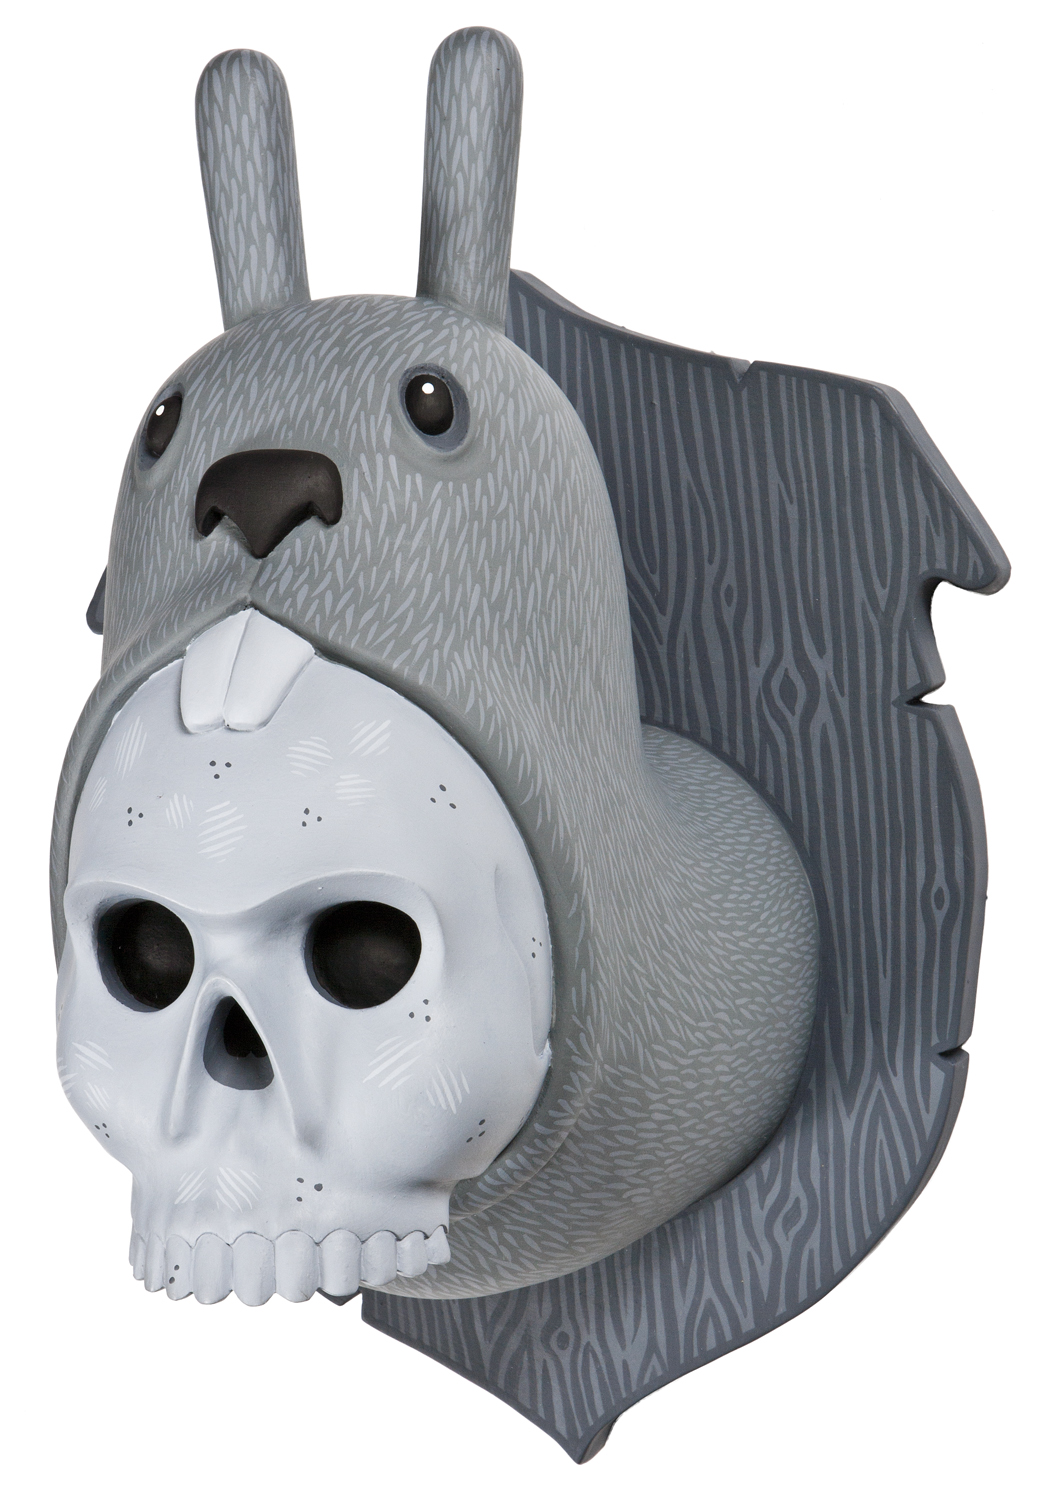 THE BUNNY BUST - JEREMY FISH